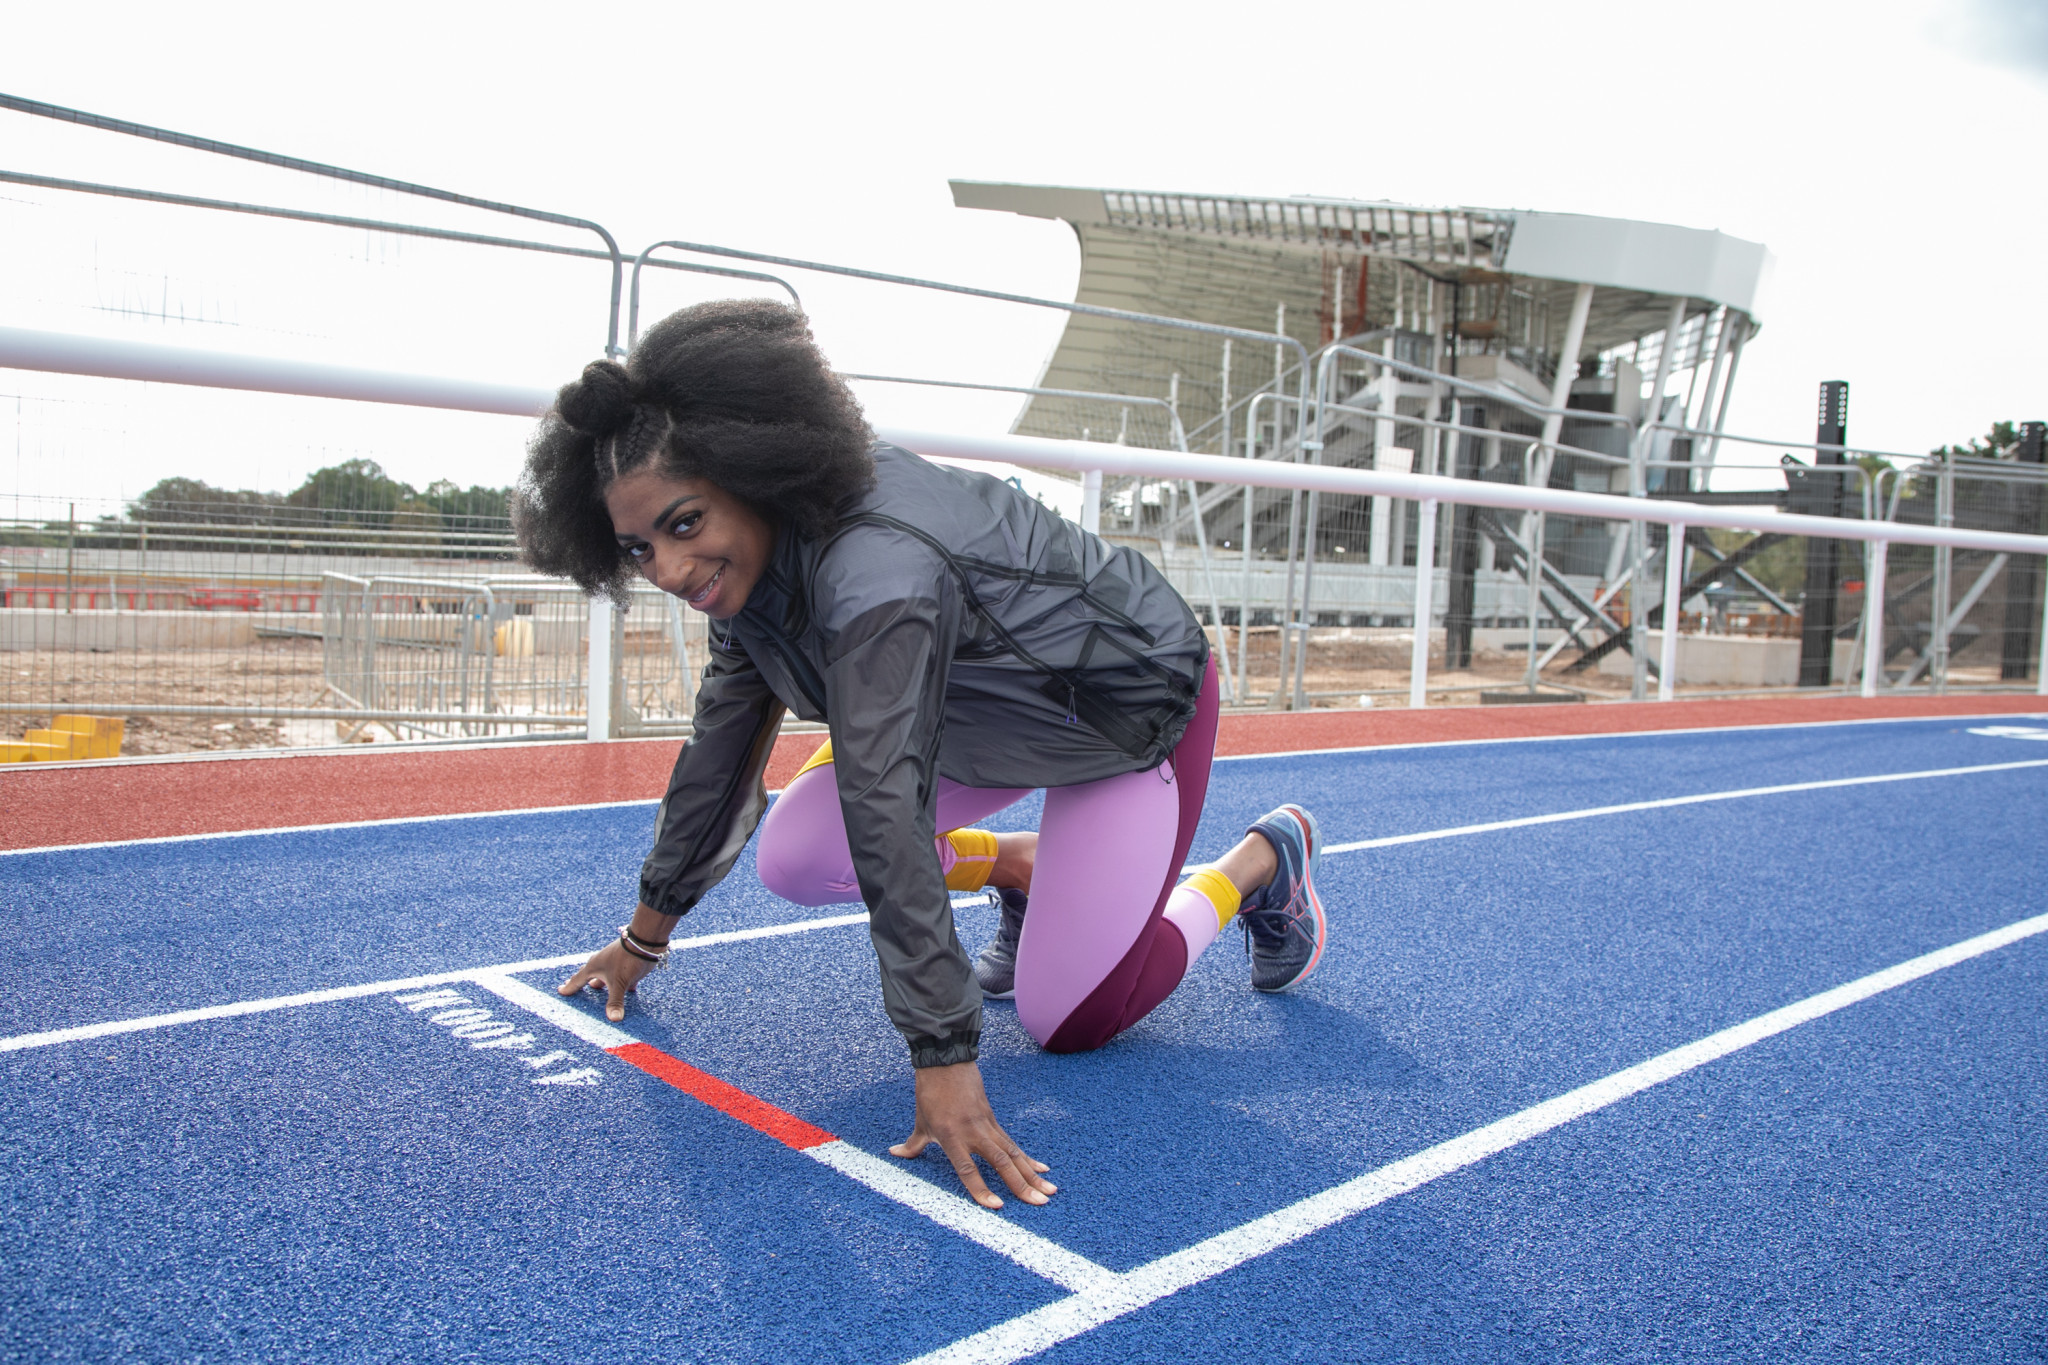 Kadeena Cox is on her marks and ready for a run around the Alexander Stadium, which is currently undergoing renovation in the build-up to the Birmingham 2022 Commonwealth Games ©Birmingham 2022